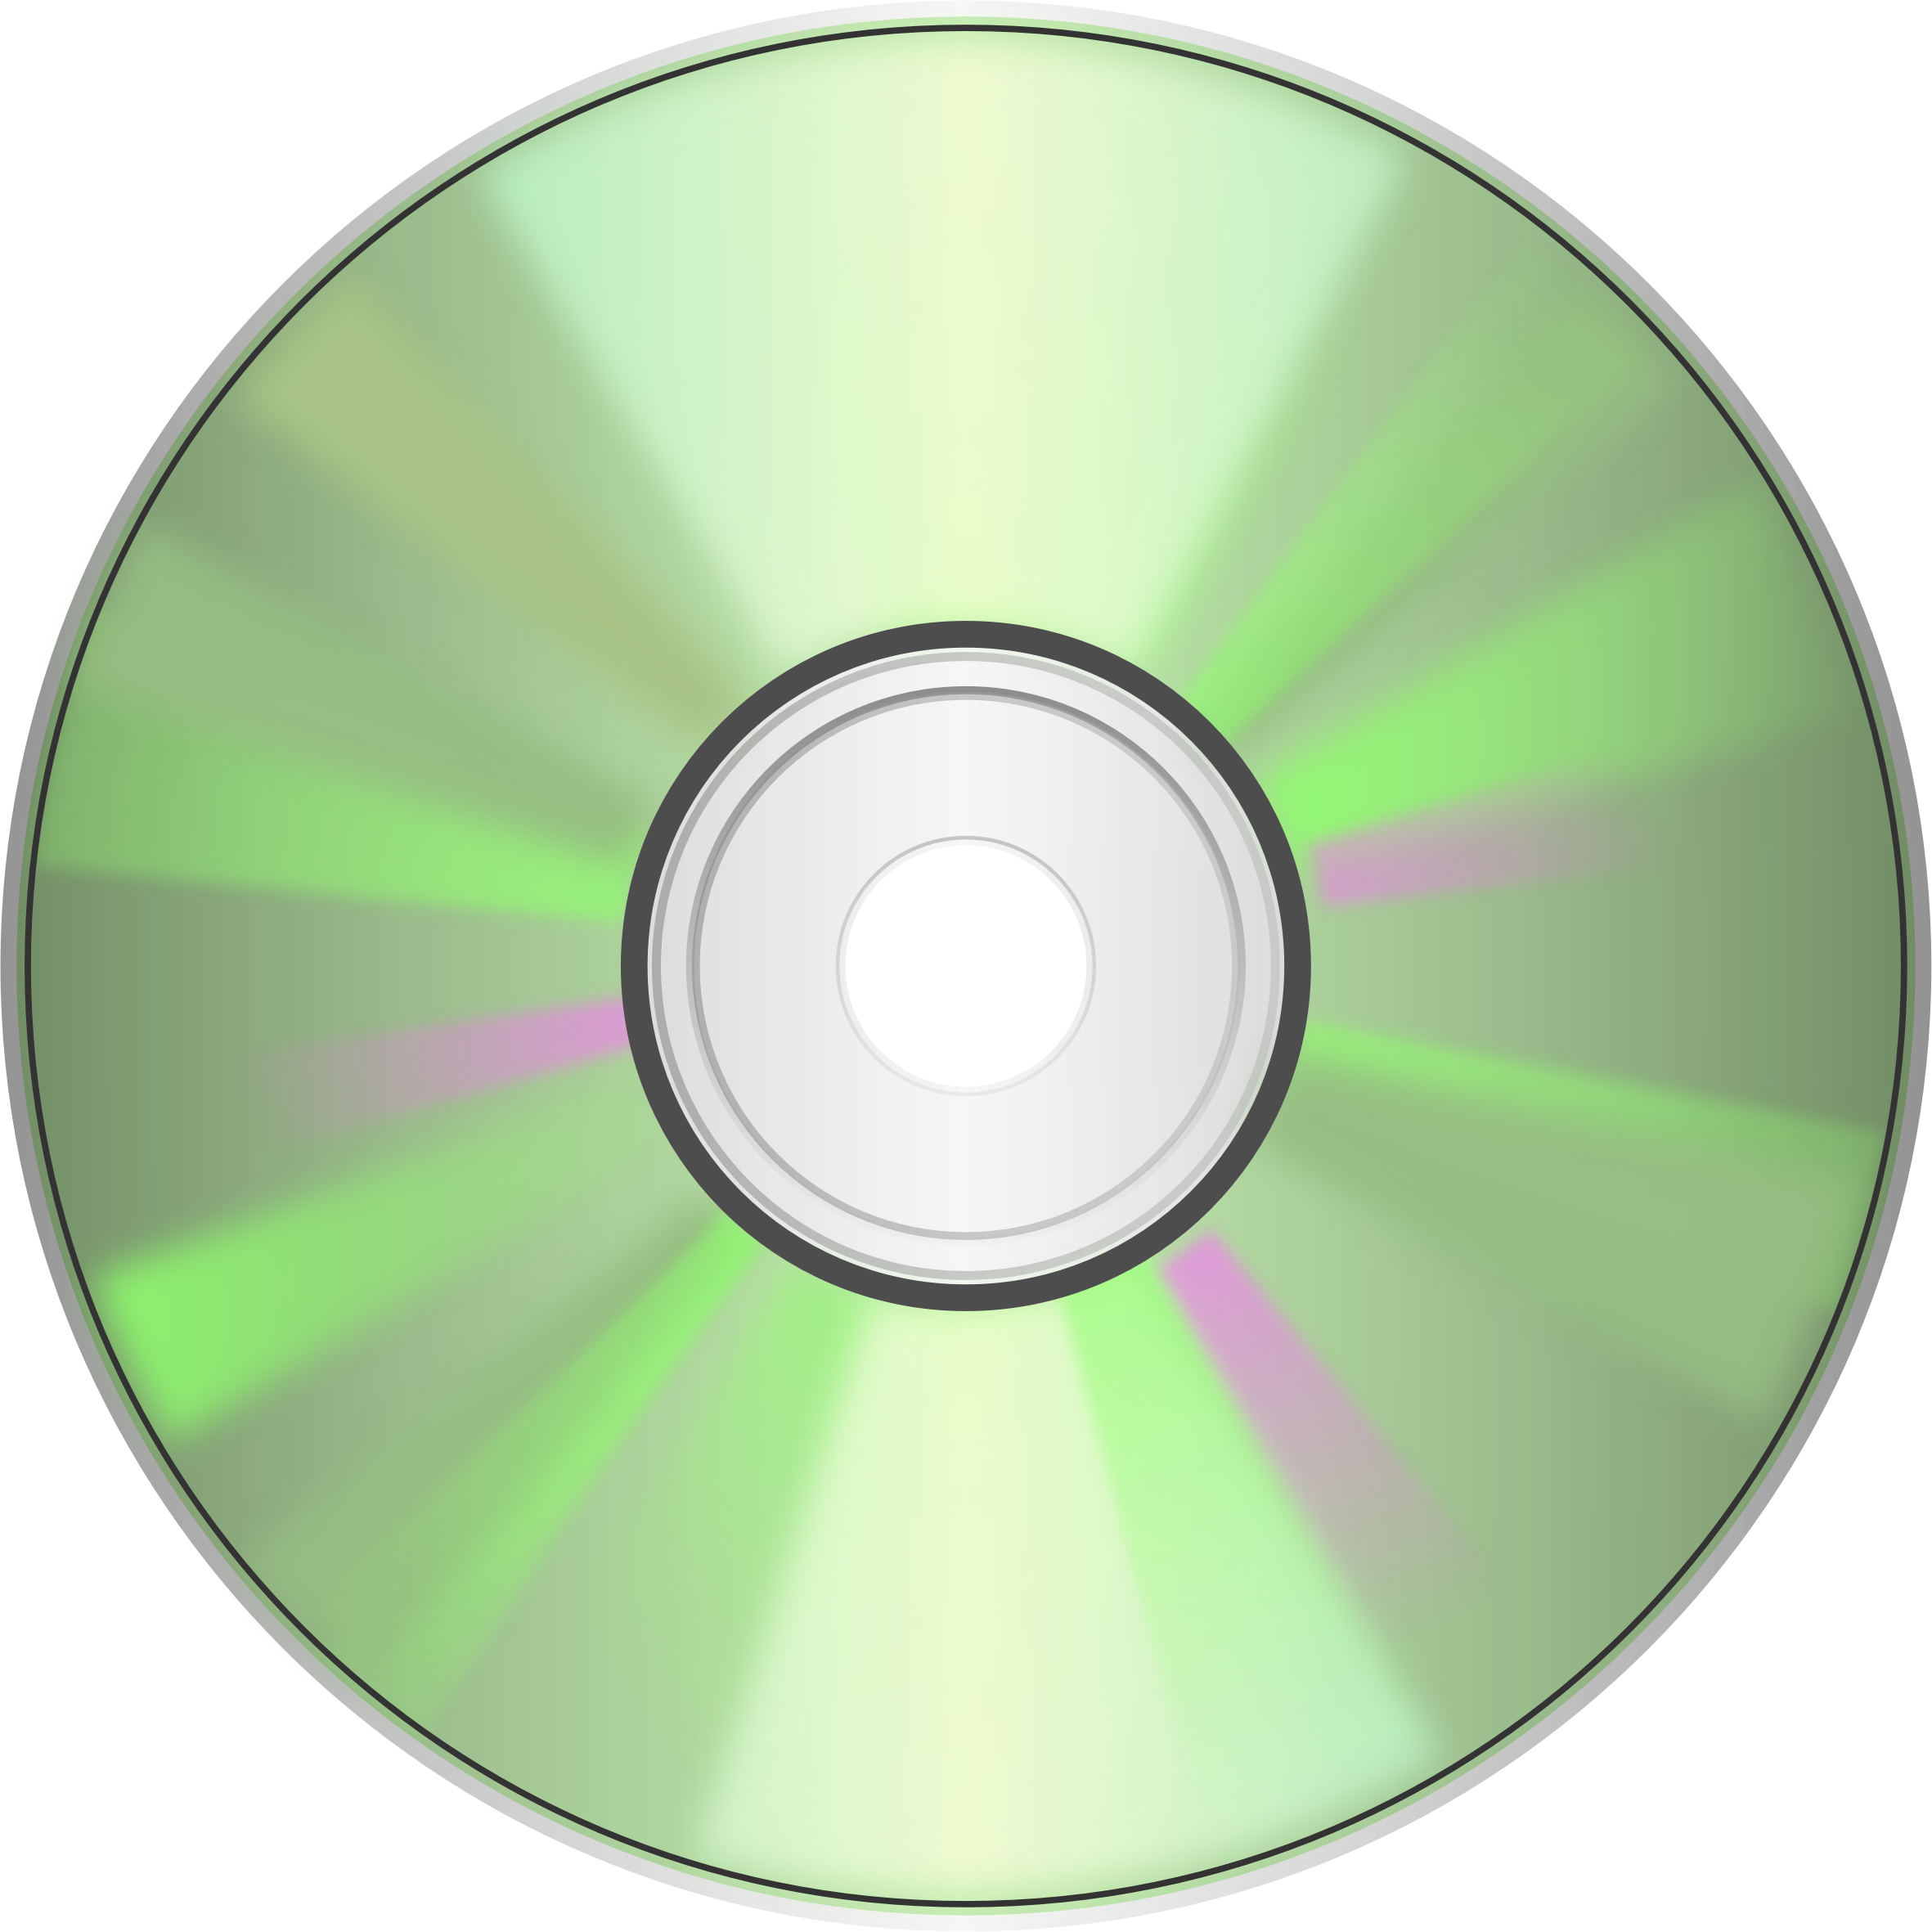 Clipart cd download picture royalty free library CD-DVD-PNG-transparent-images-free-download-clipart-pics-1371238268 ... picture royalty free library